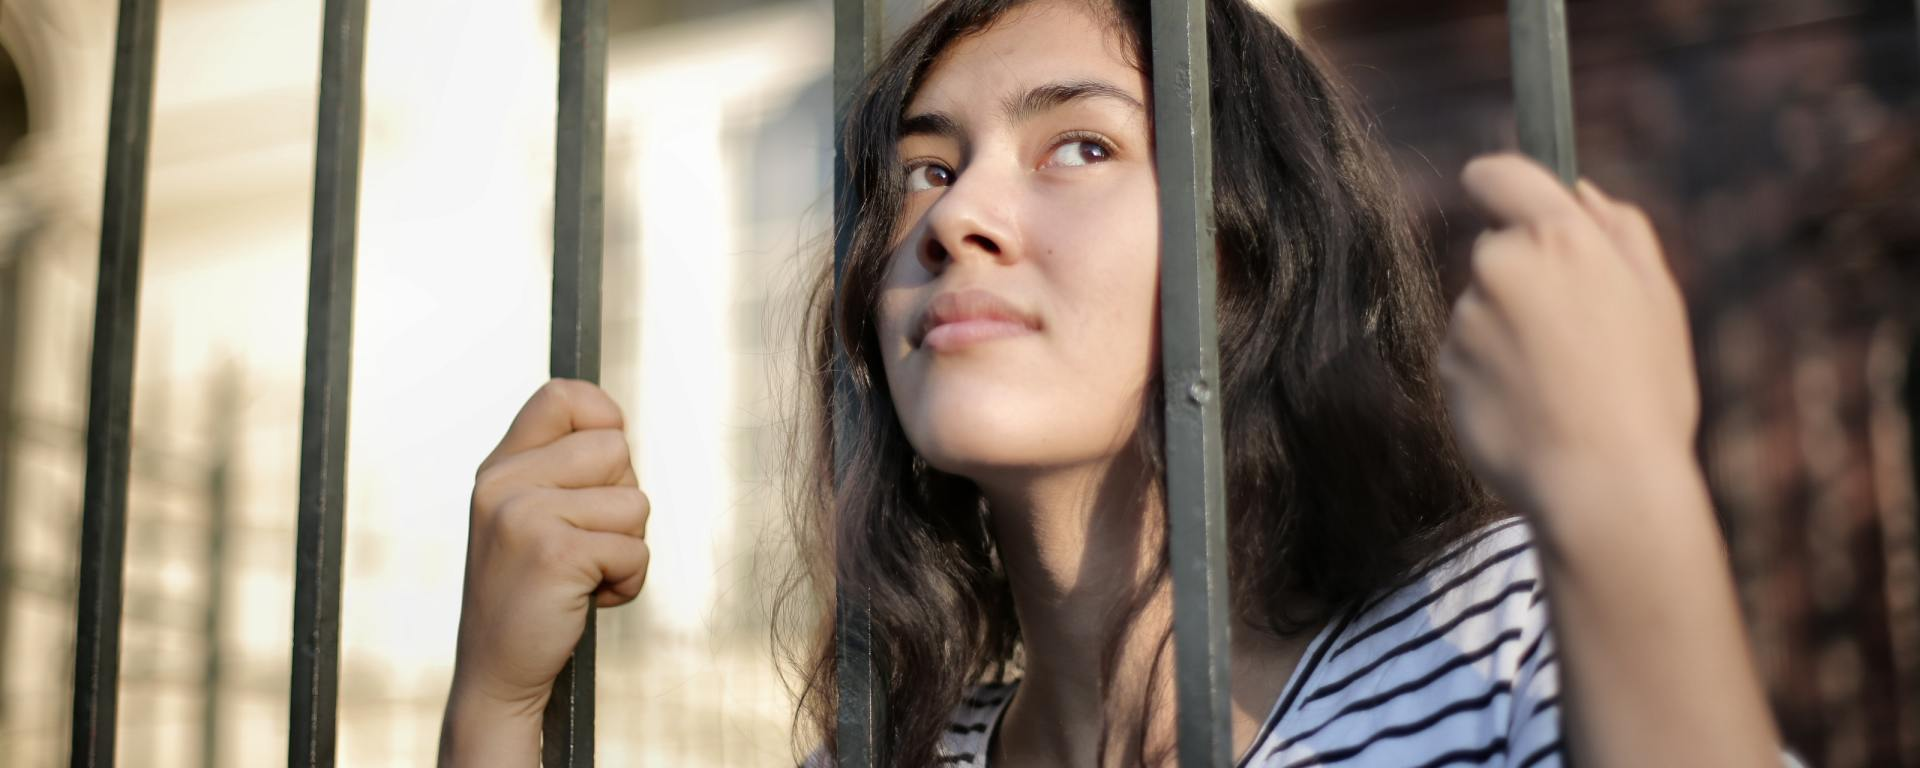 A human with long hair and a v neck tshirt is behidn bars (a fence) outdoors, placing their face through the hole of the bars